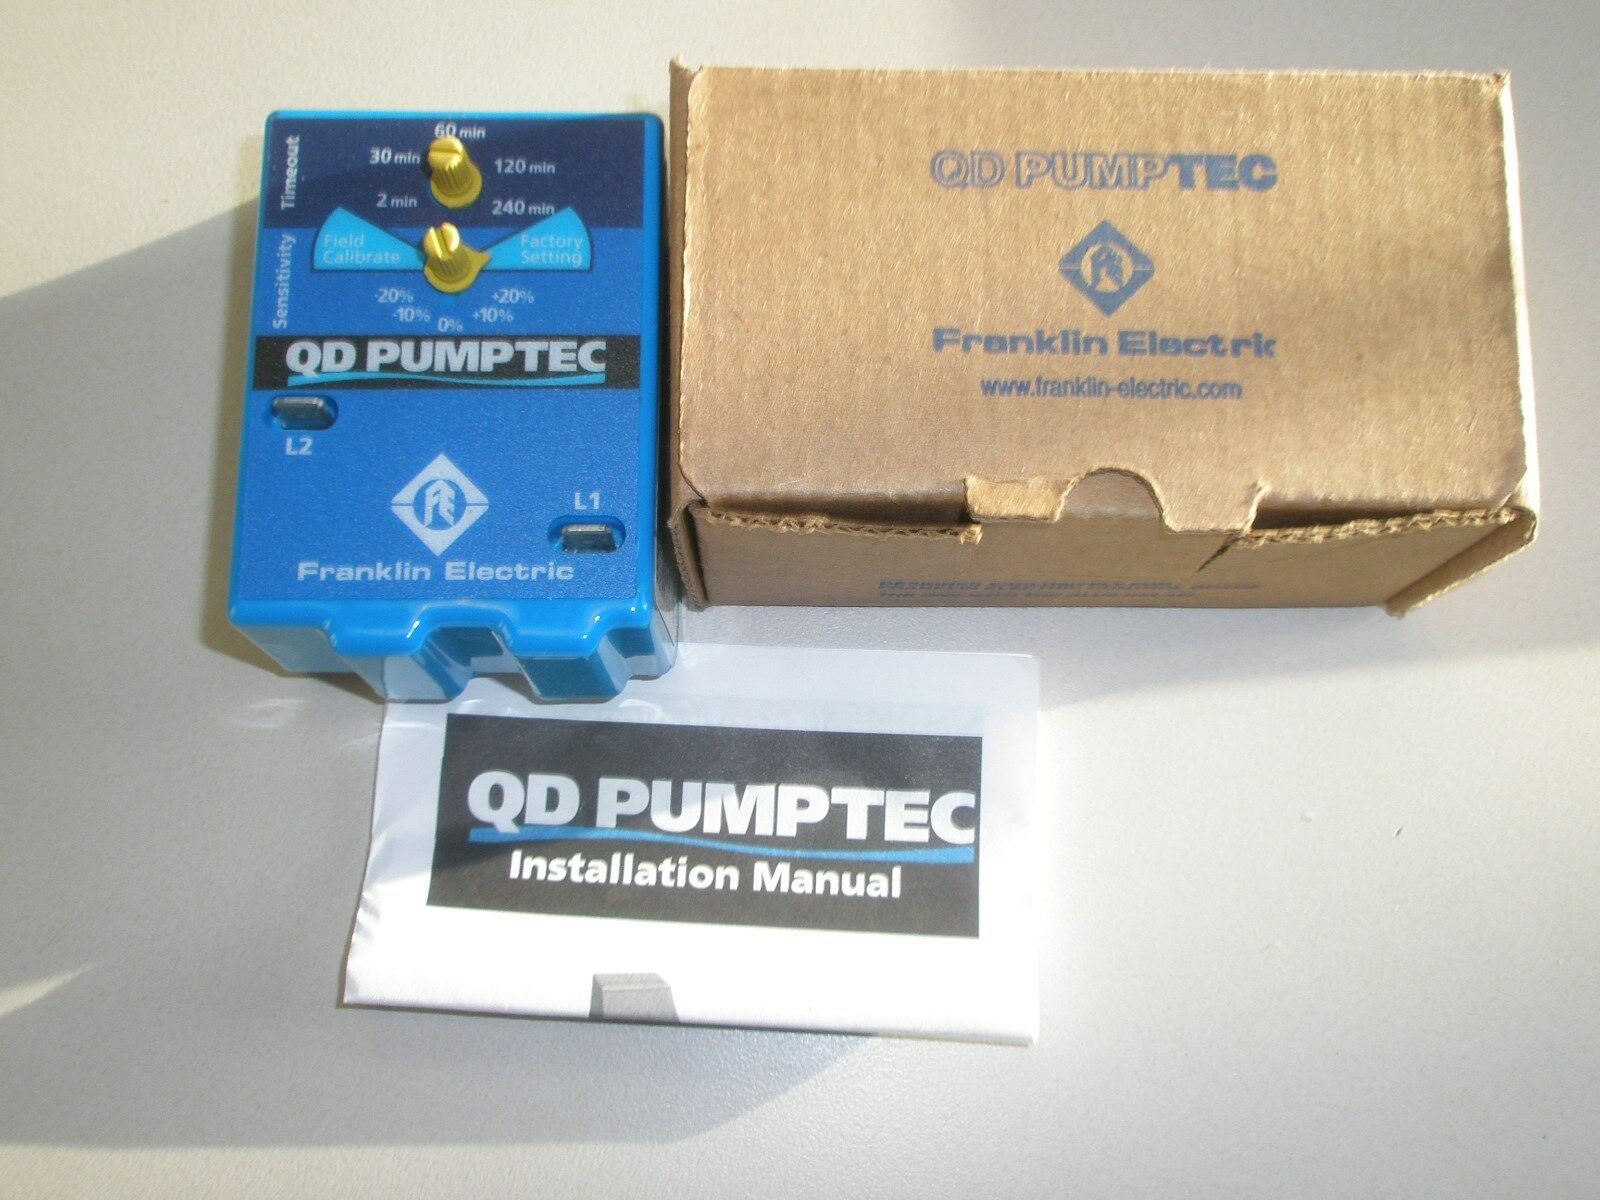 Franklin Electric Pumptec Qd For Submersible Pumps Low Yield Wells Control Box Norton Secured Powered By Verisign